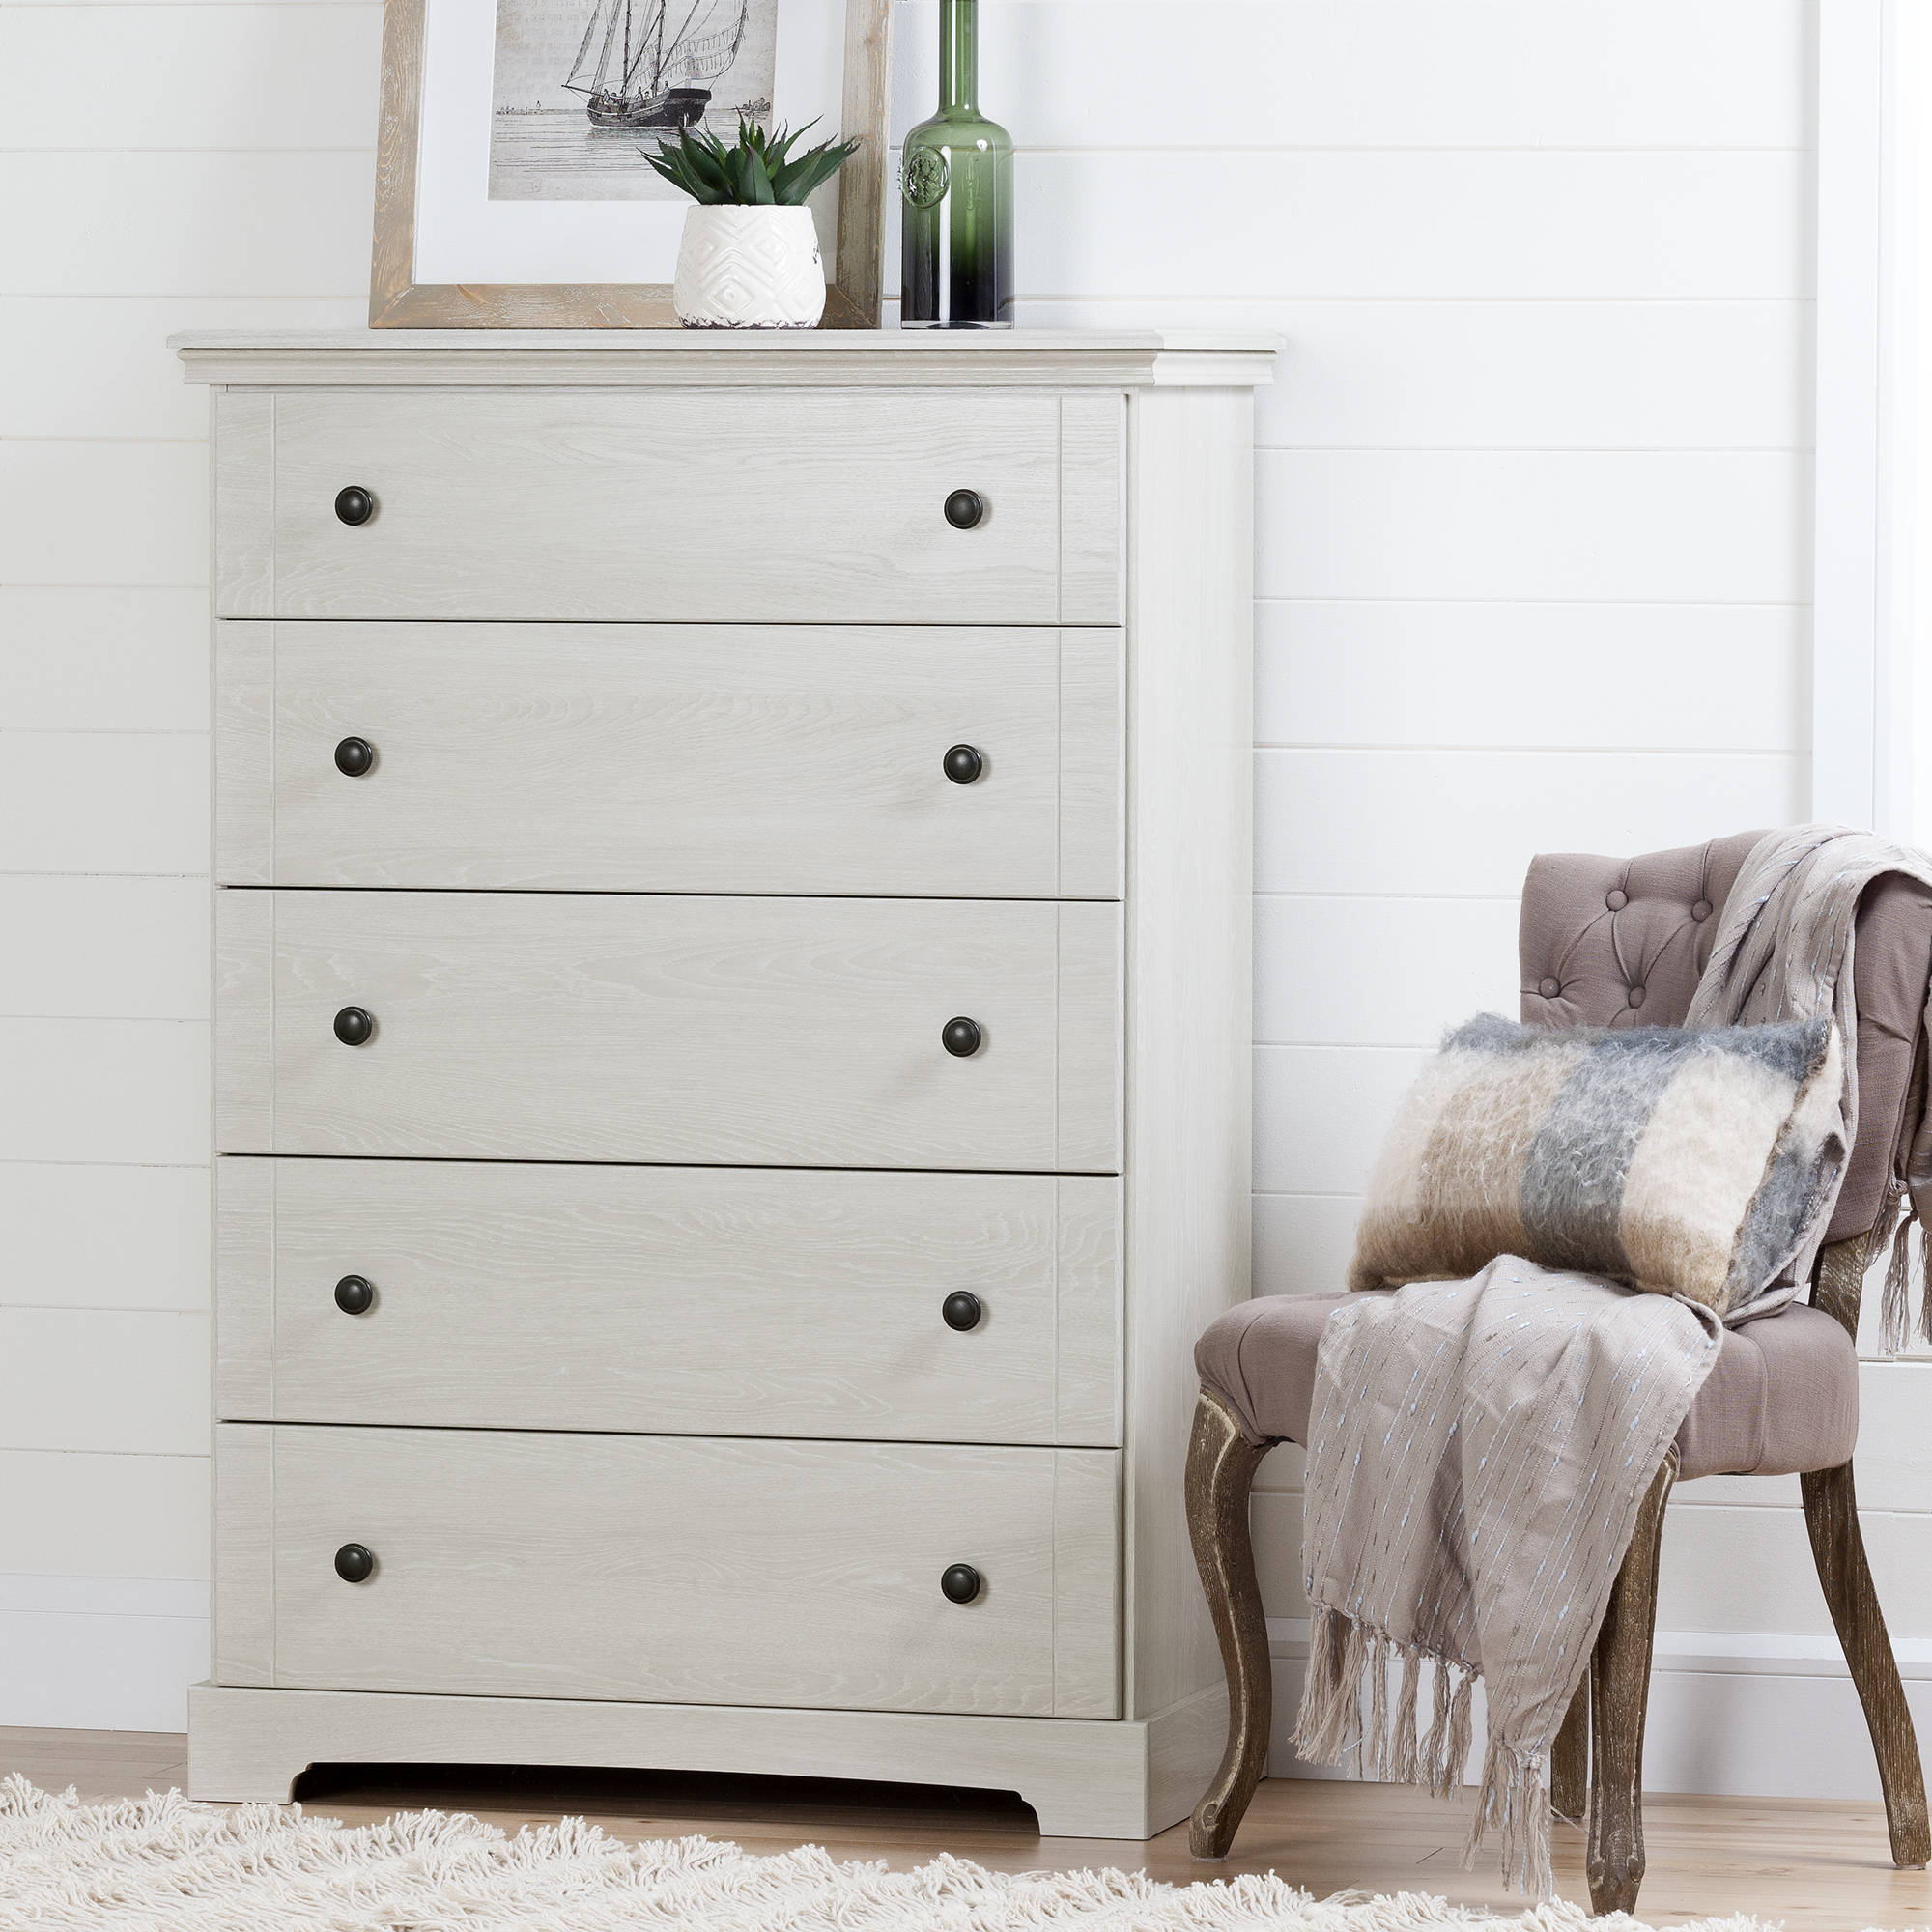 South Shore Avilla 5-Drawer Chest, Winter Oak by South Shore